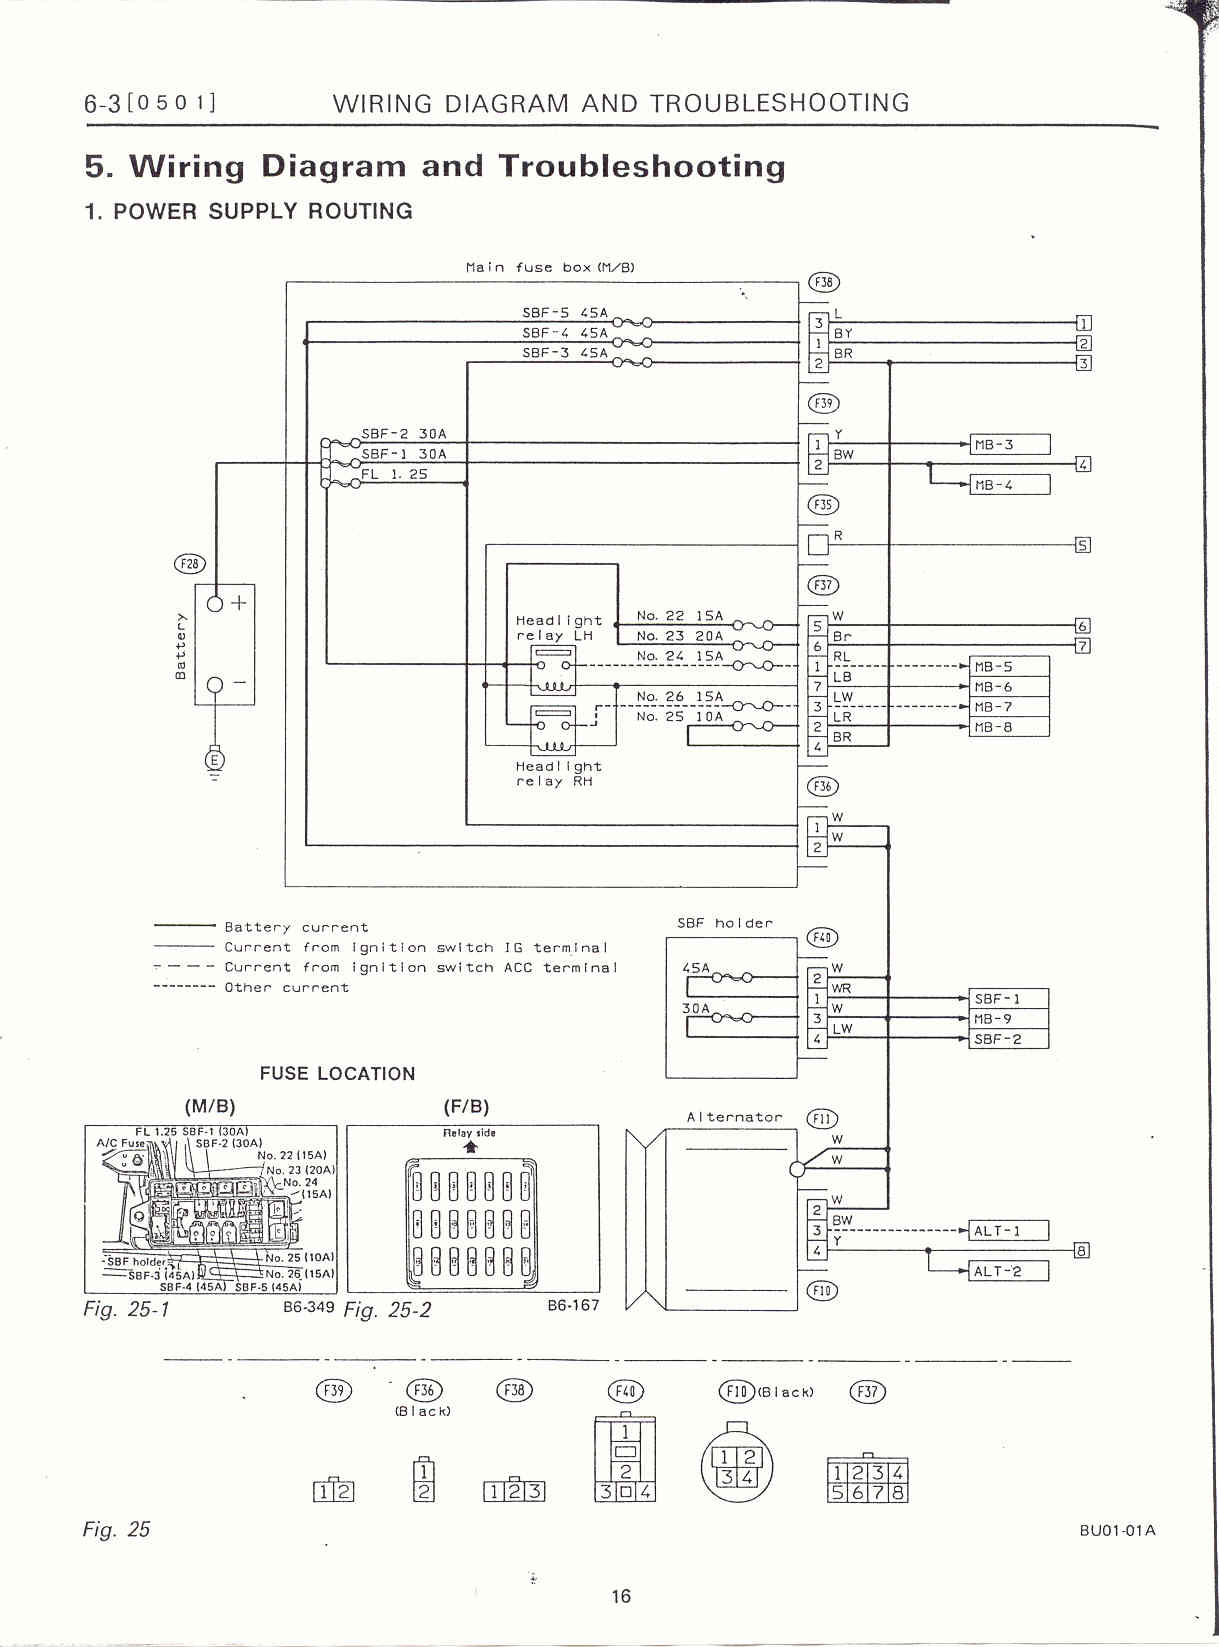 2008 Subaru Forester Ignition Wiring Diagram Great Installation Of Toyota Rav4 Engine 2007 2 5 Trusted Rh 46 Nl Schoenheitsbrieftaube De 2006